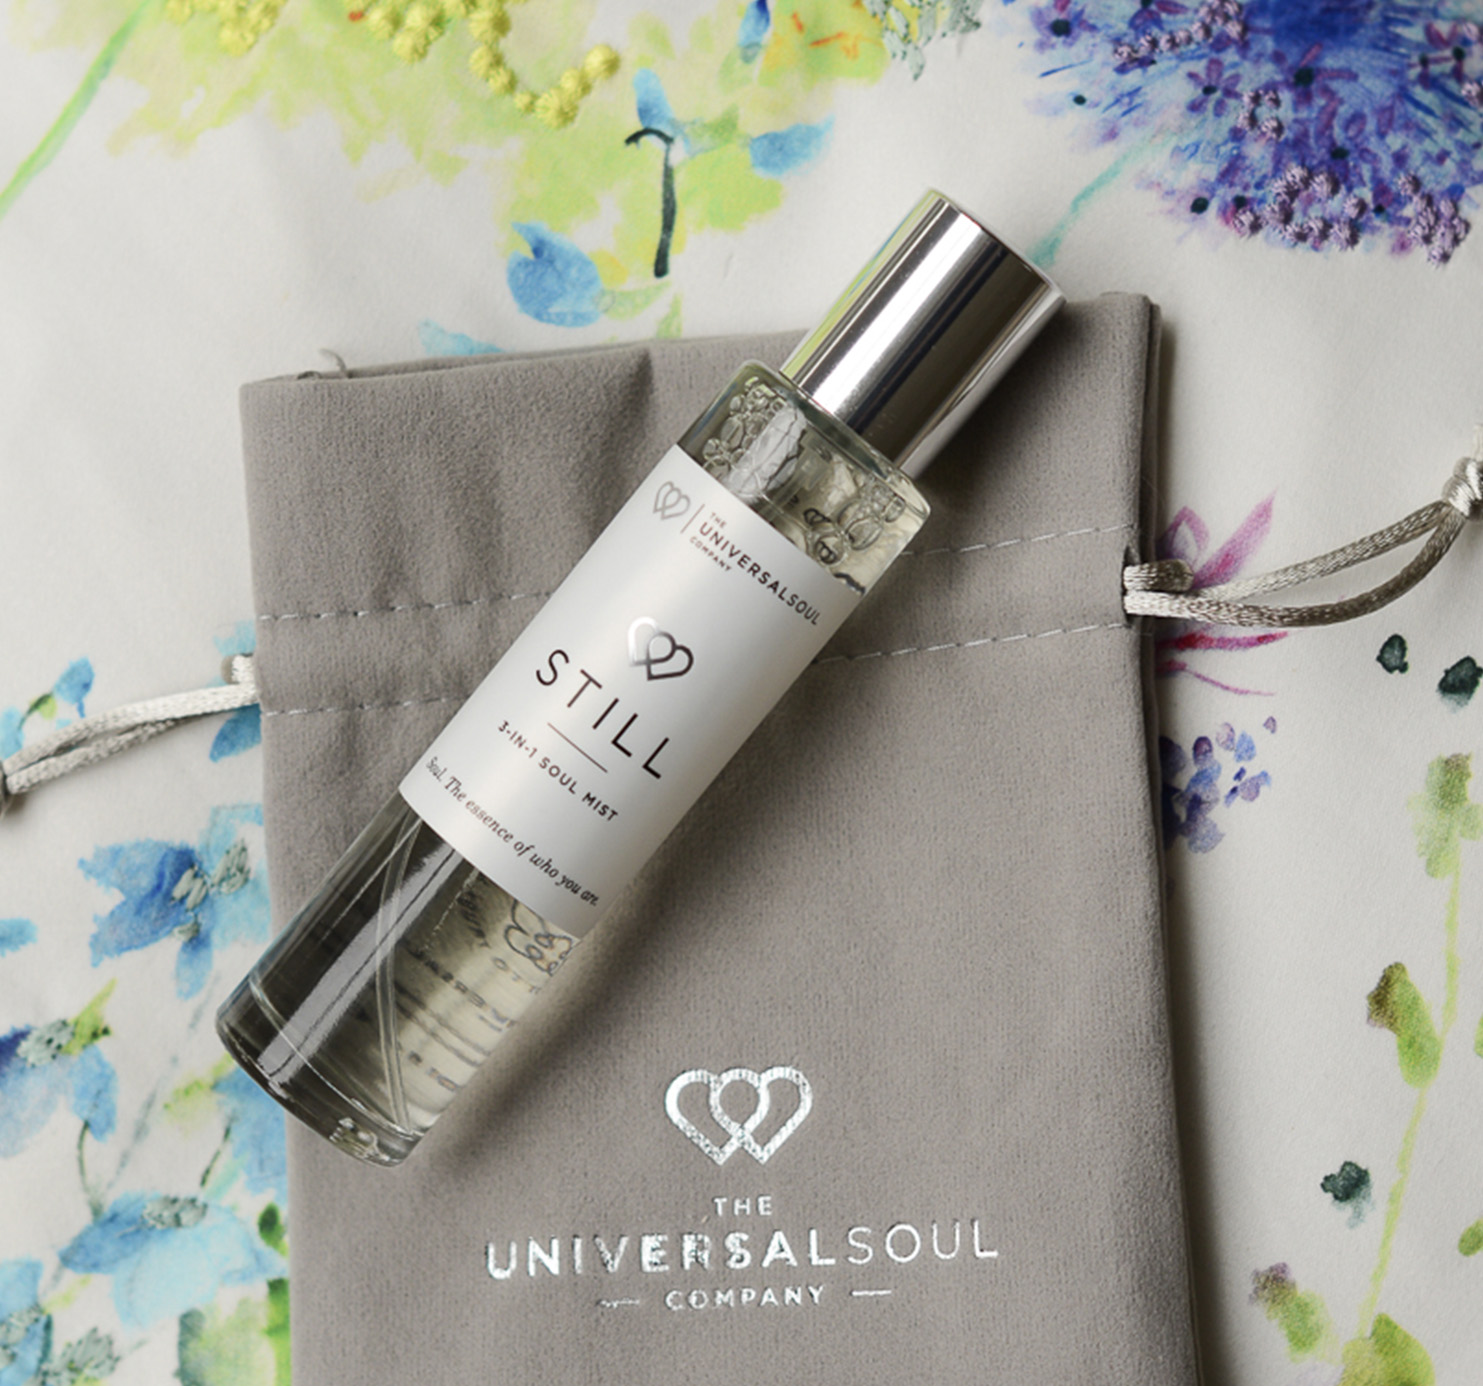 Universal Soul Travel Mist SS19 Campaign Image